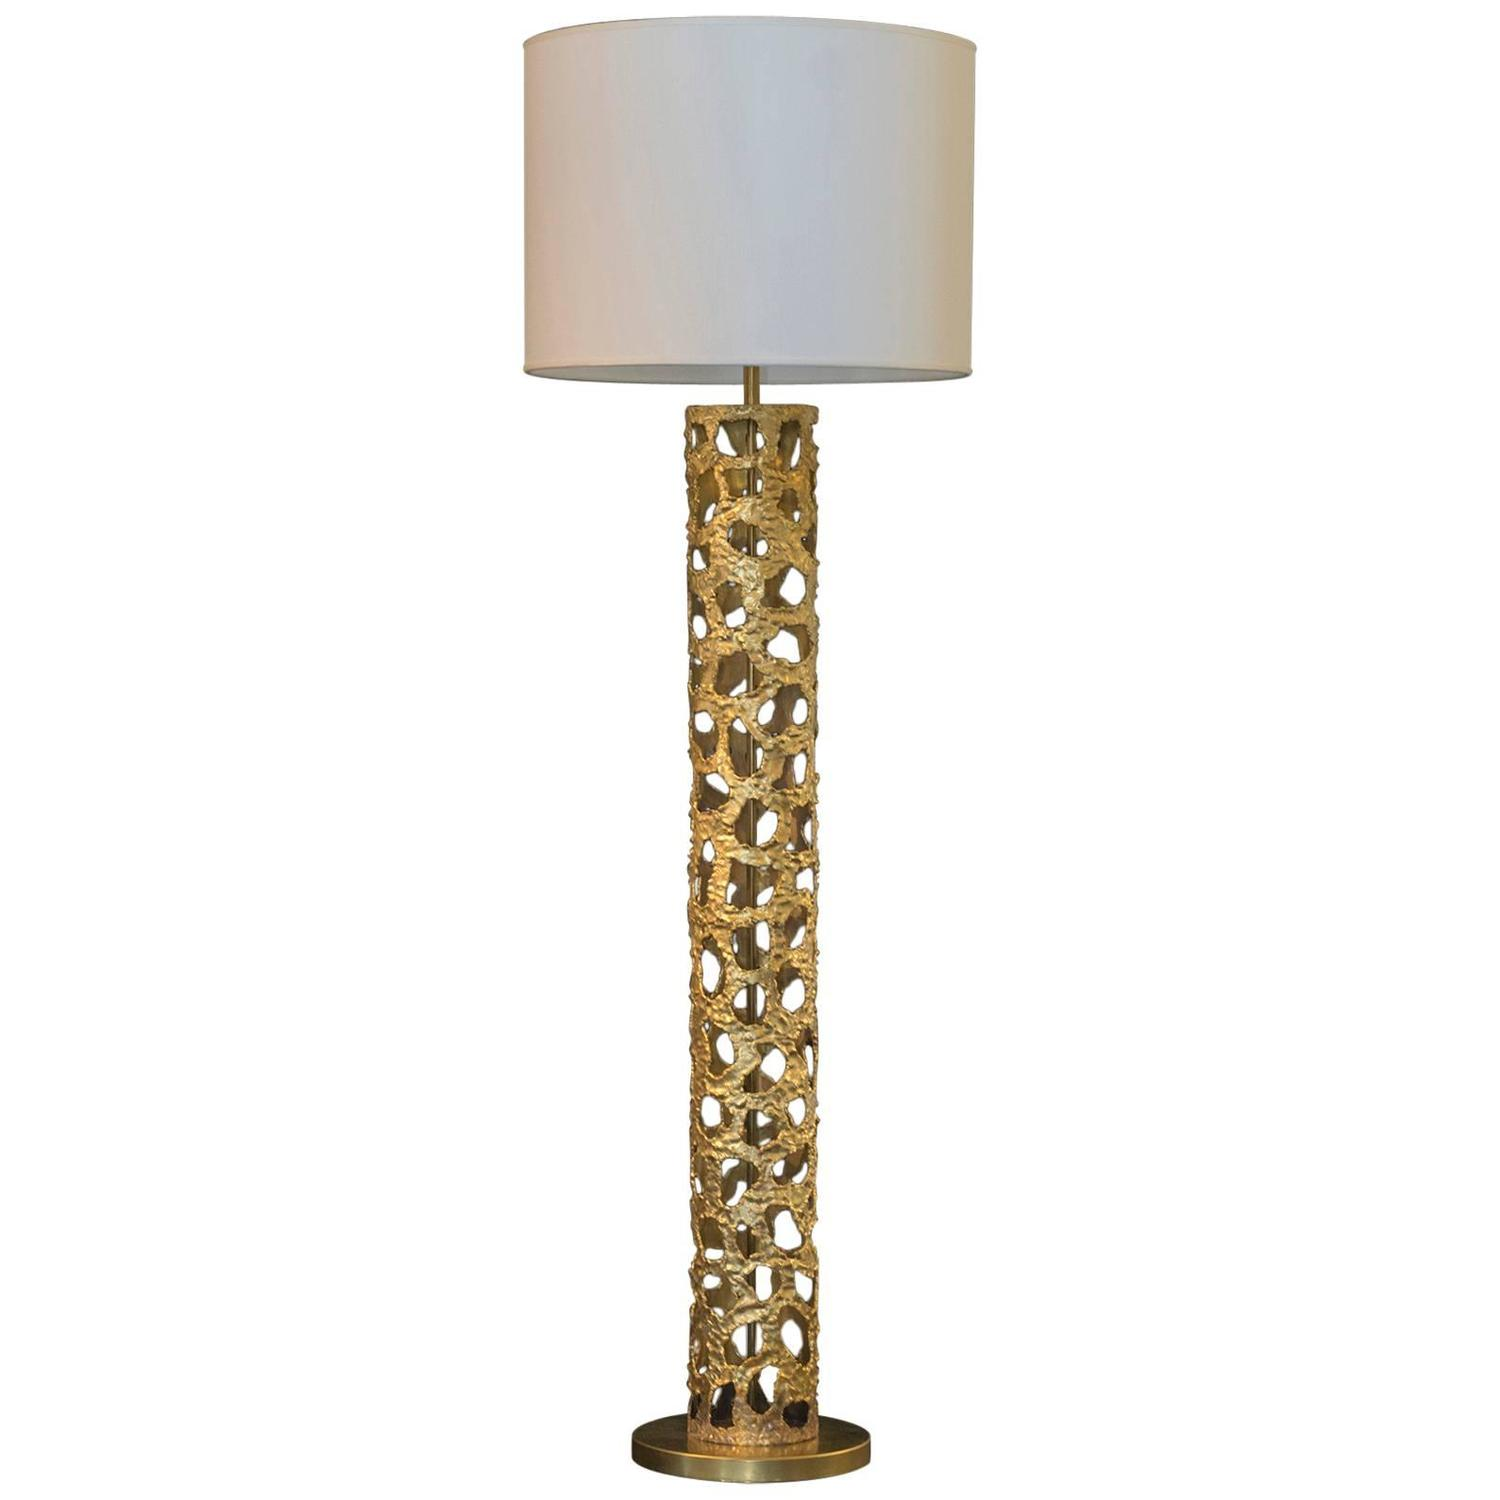 Flair edition quotcylinderquot brass floor lamp for sale at 1stdibs for White cylinder floor lamp